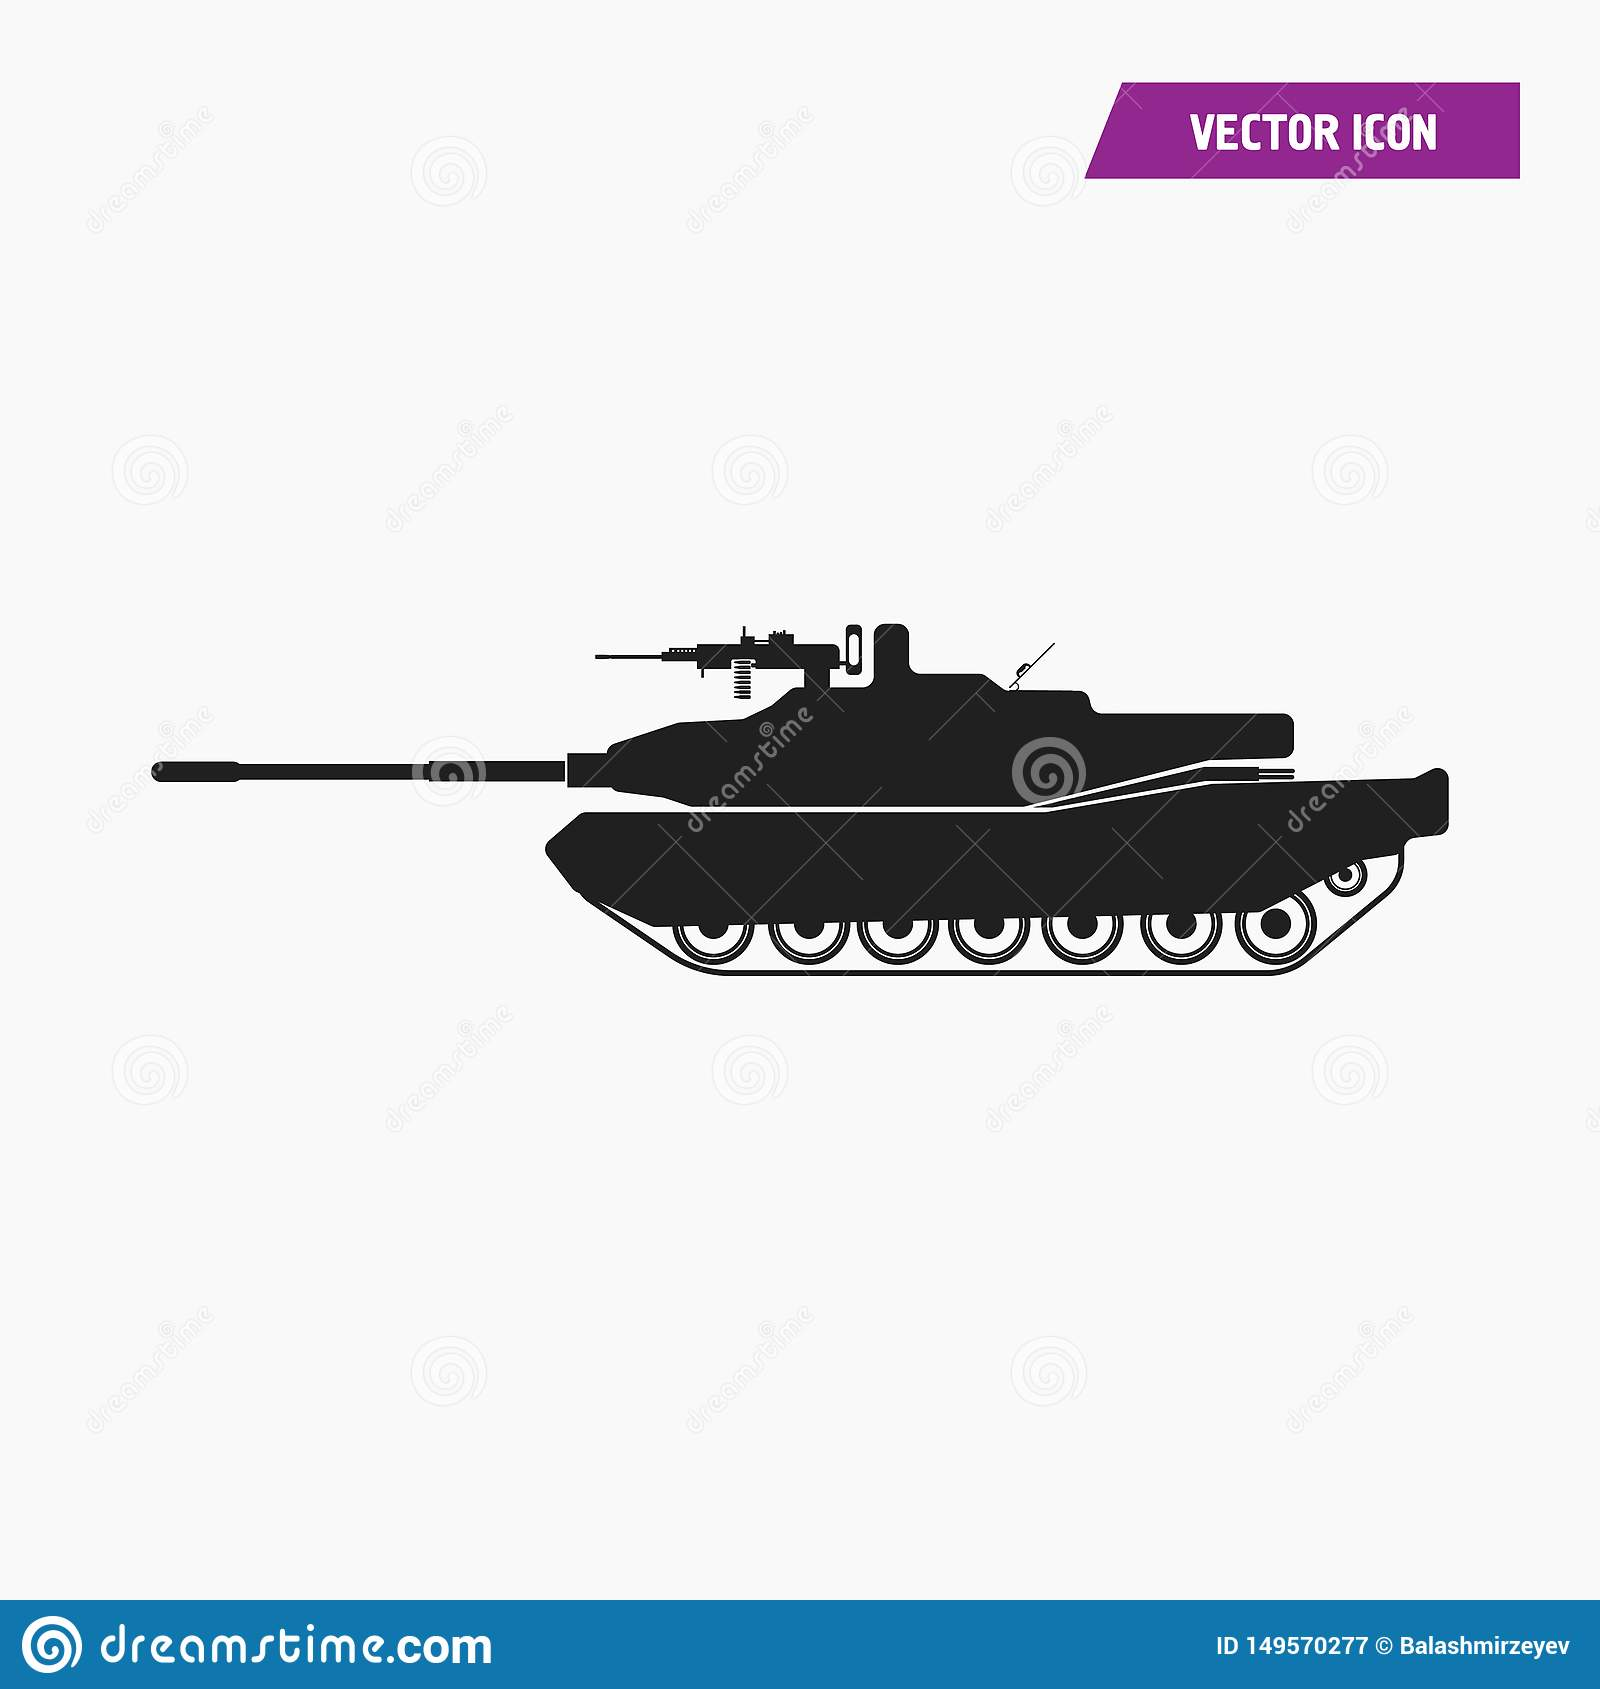 black filled artillery military tank icon stock vector illustration of attack russian 149570277 dreamstime com